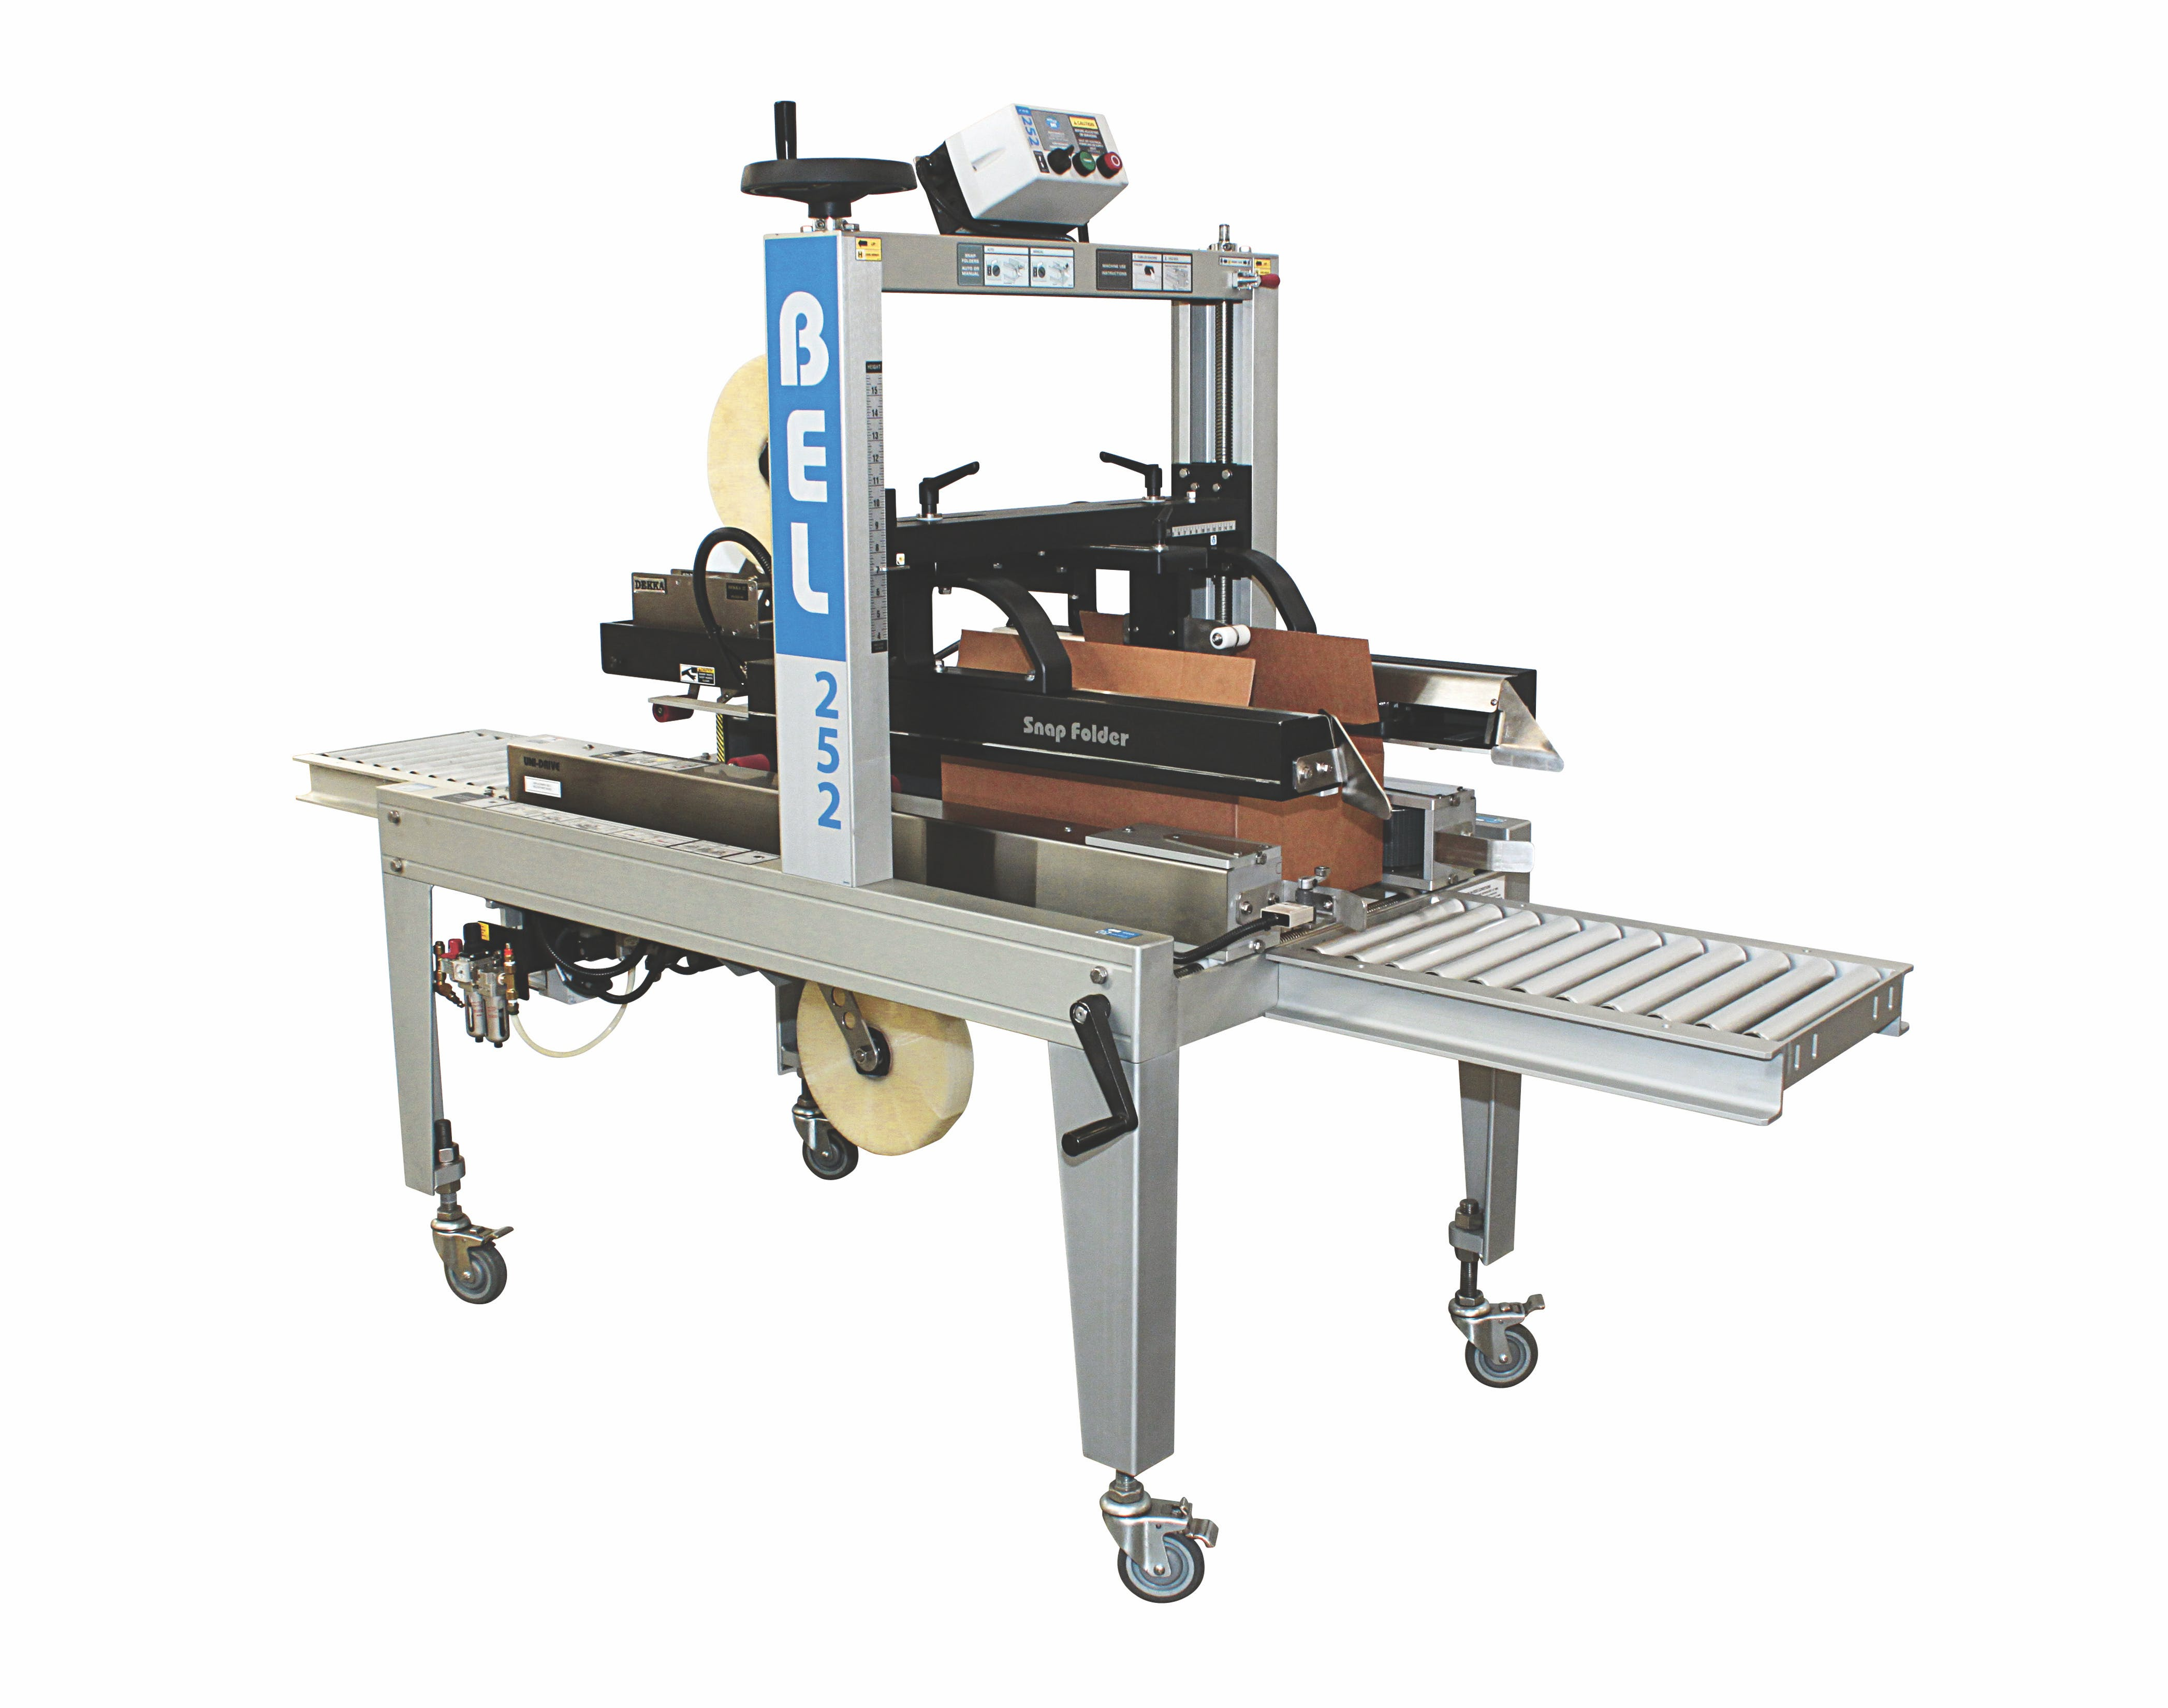 BEL 252 - Top and Bottom Sealer. Fully Automatic - Belcor Case Sealer - BEL-252, Fully Automatic - sold by Package Devices LLC